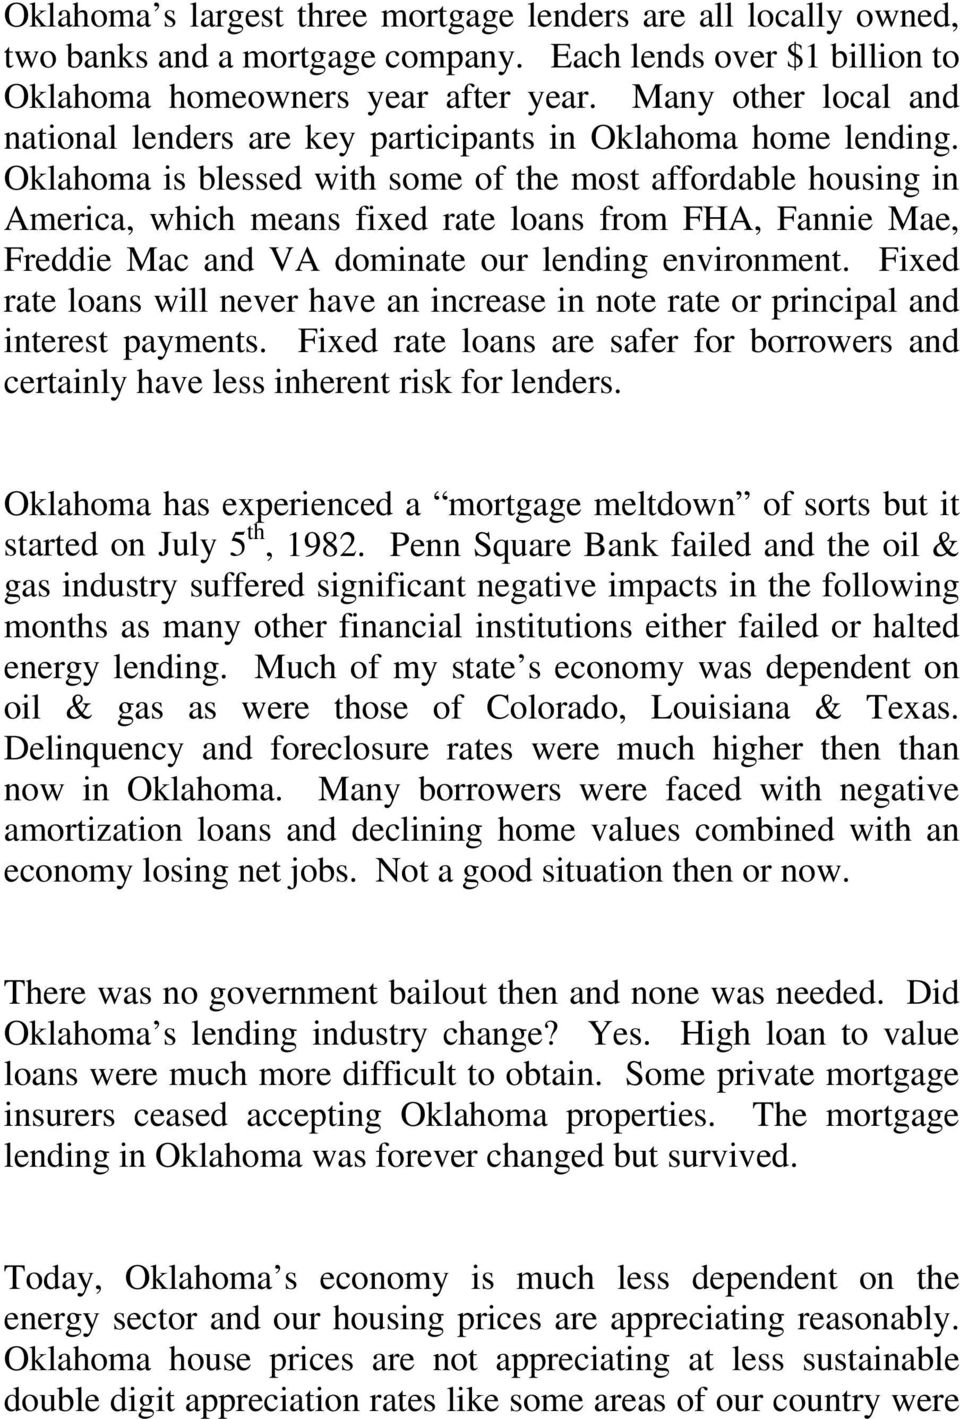 Oklahoma is blessed with some of the most affordable housing in America, which means fixed rate loans from FHA, Fannie Mae, Freddie Mac and VA dominate our lending environment.